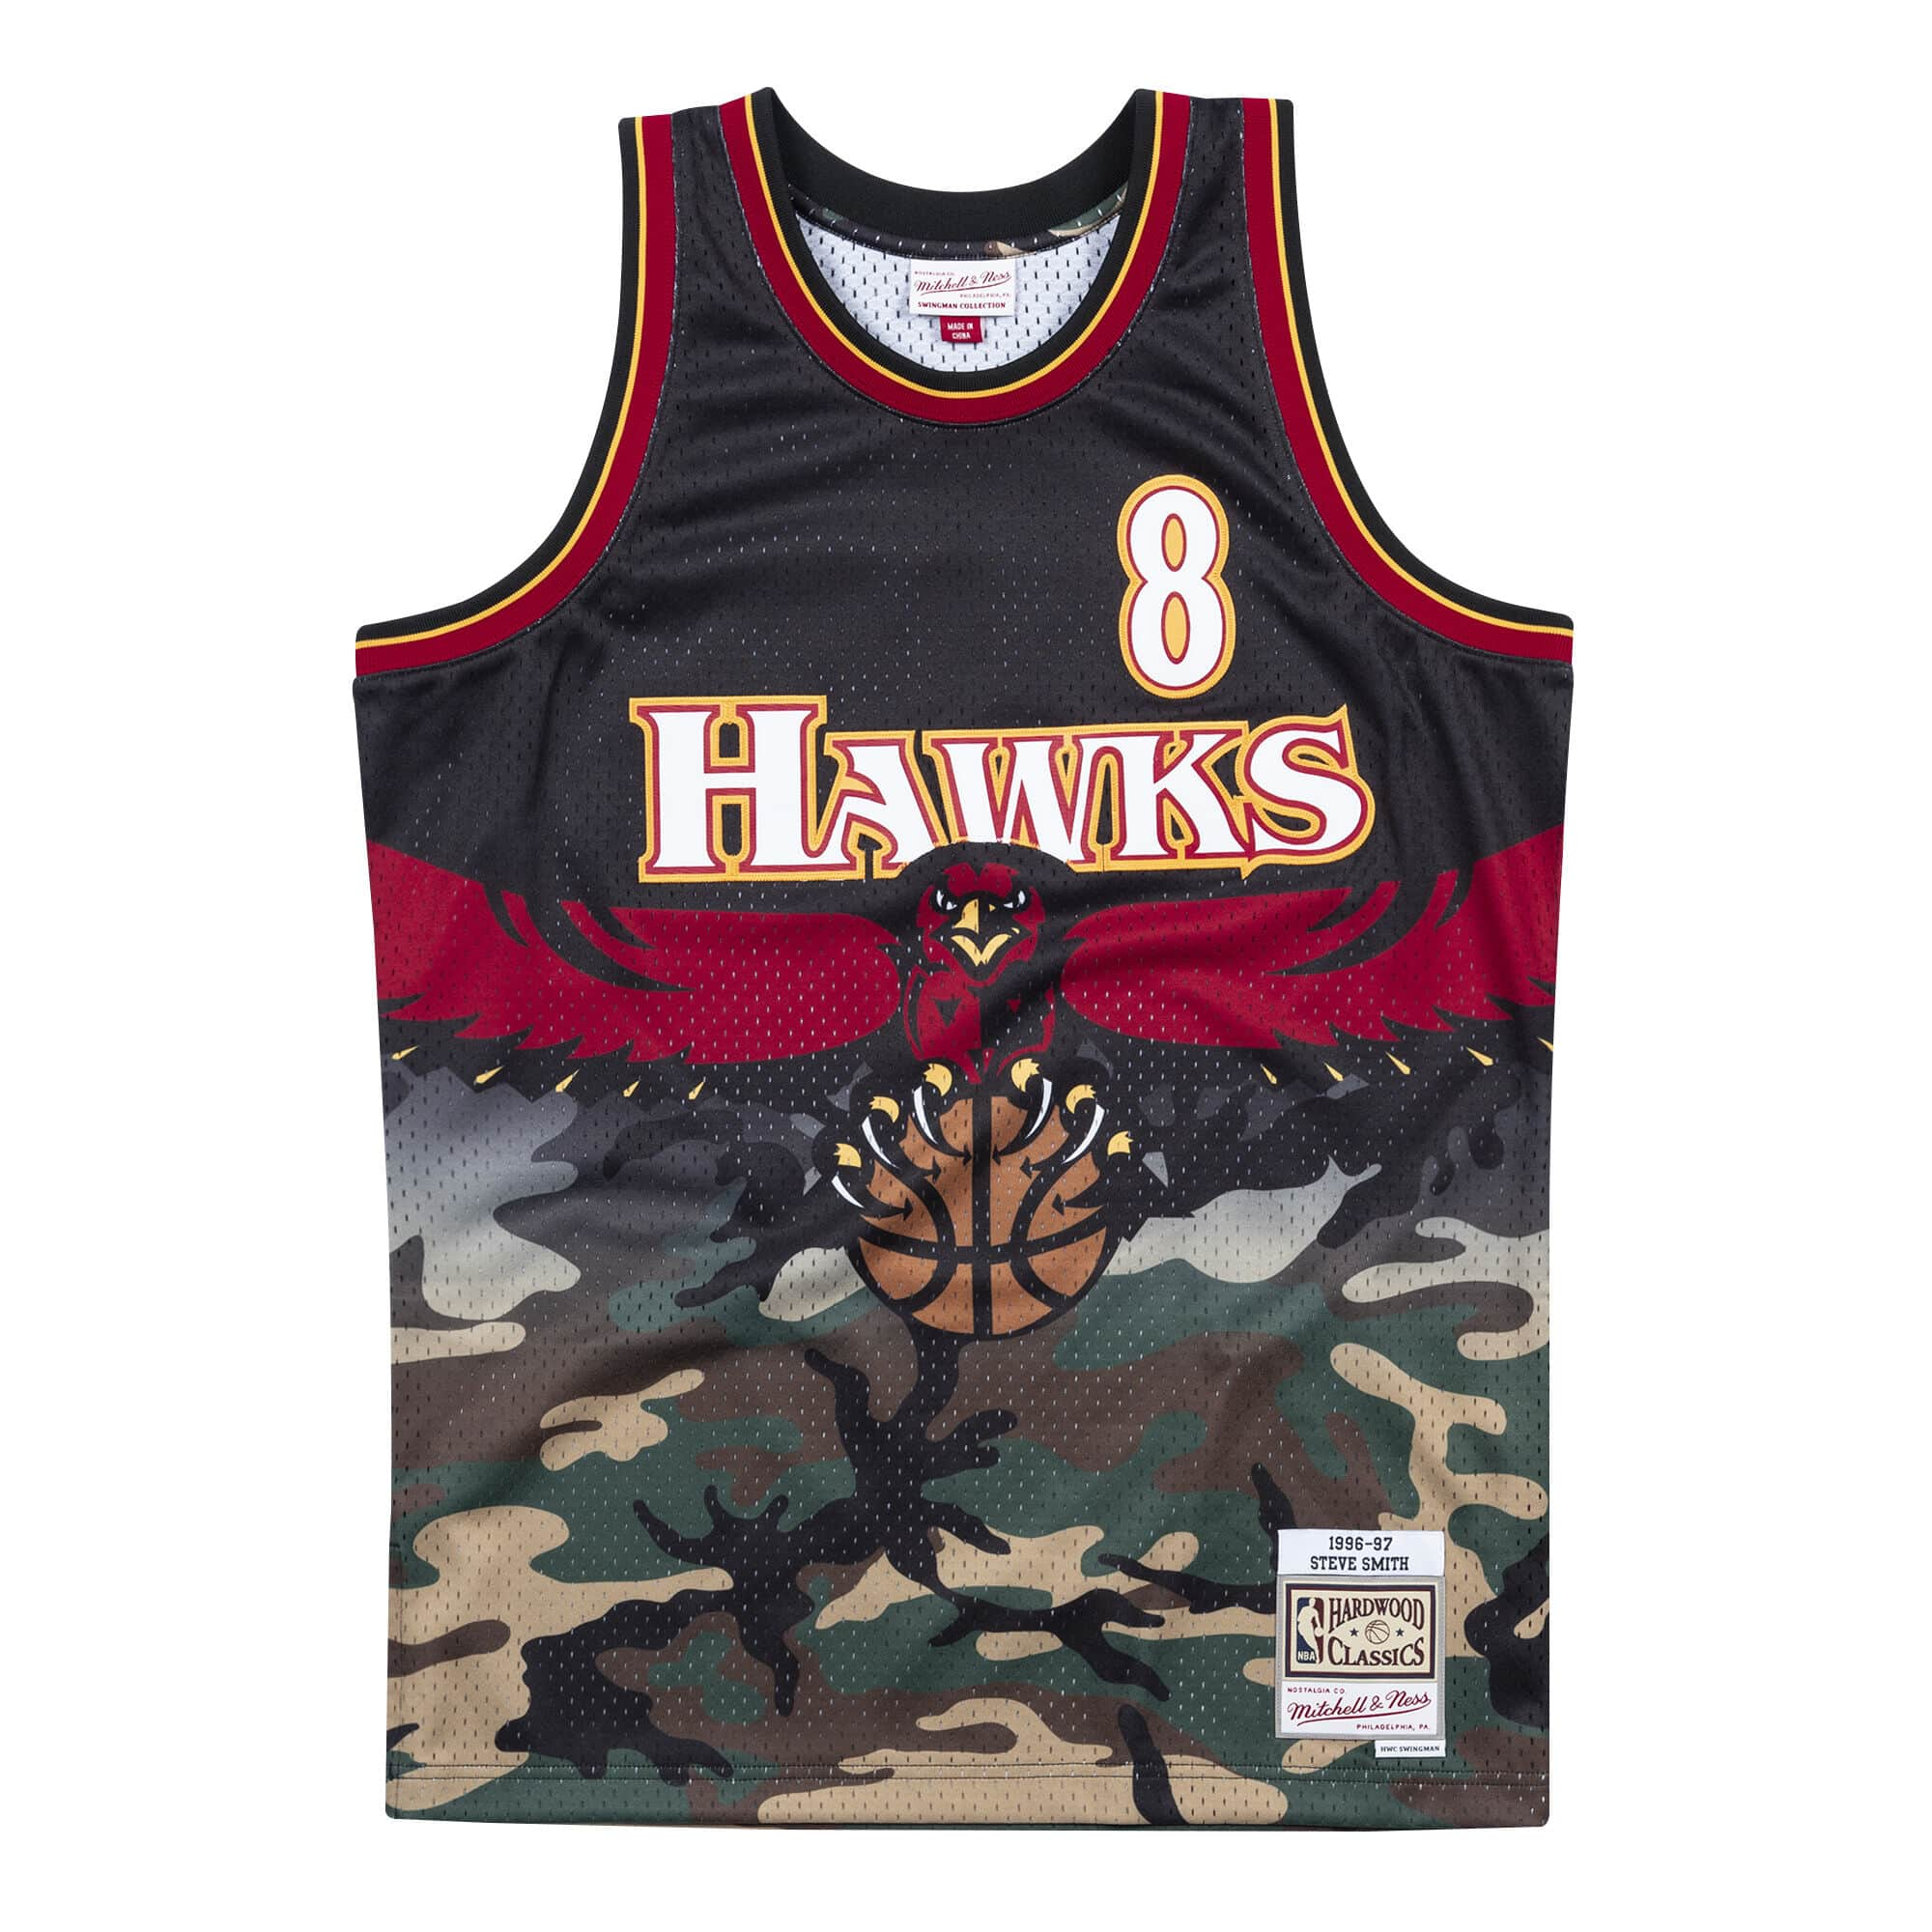 Woodland Camo Swingman Jersey Atlanta Hawks 1996-97 Steve Smith